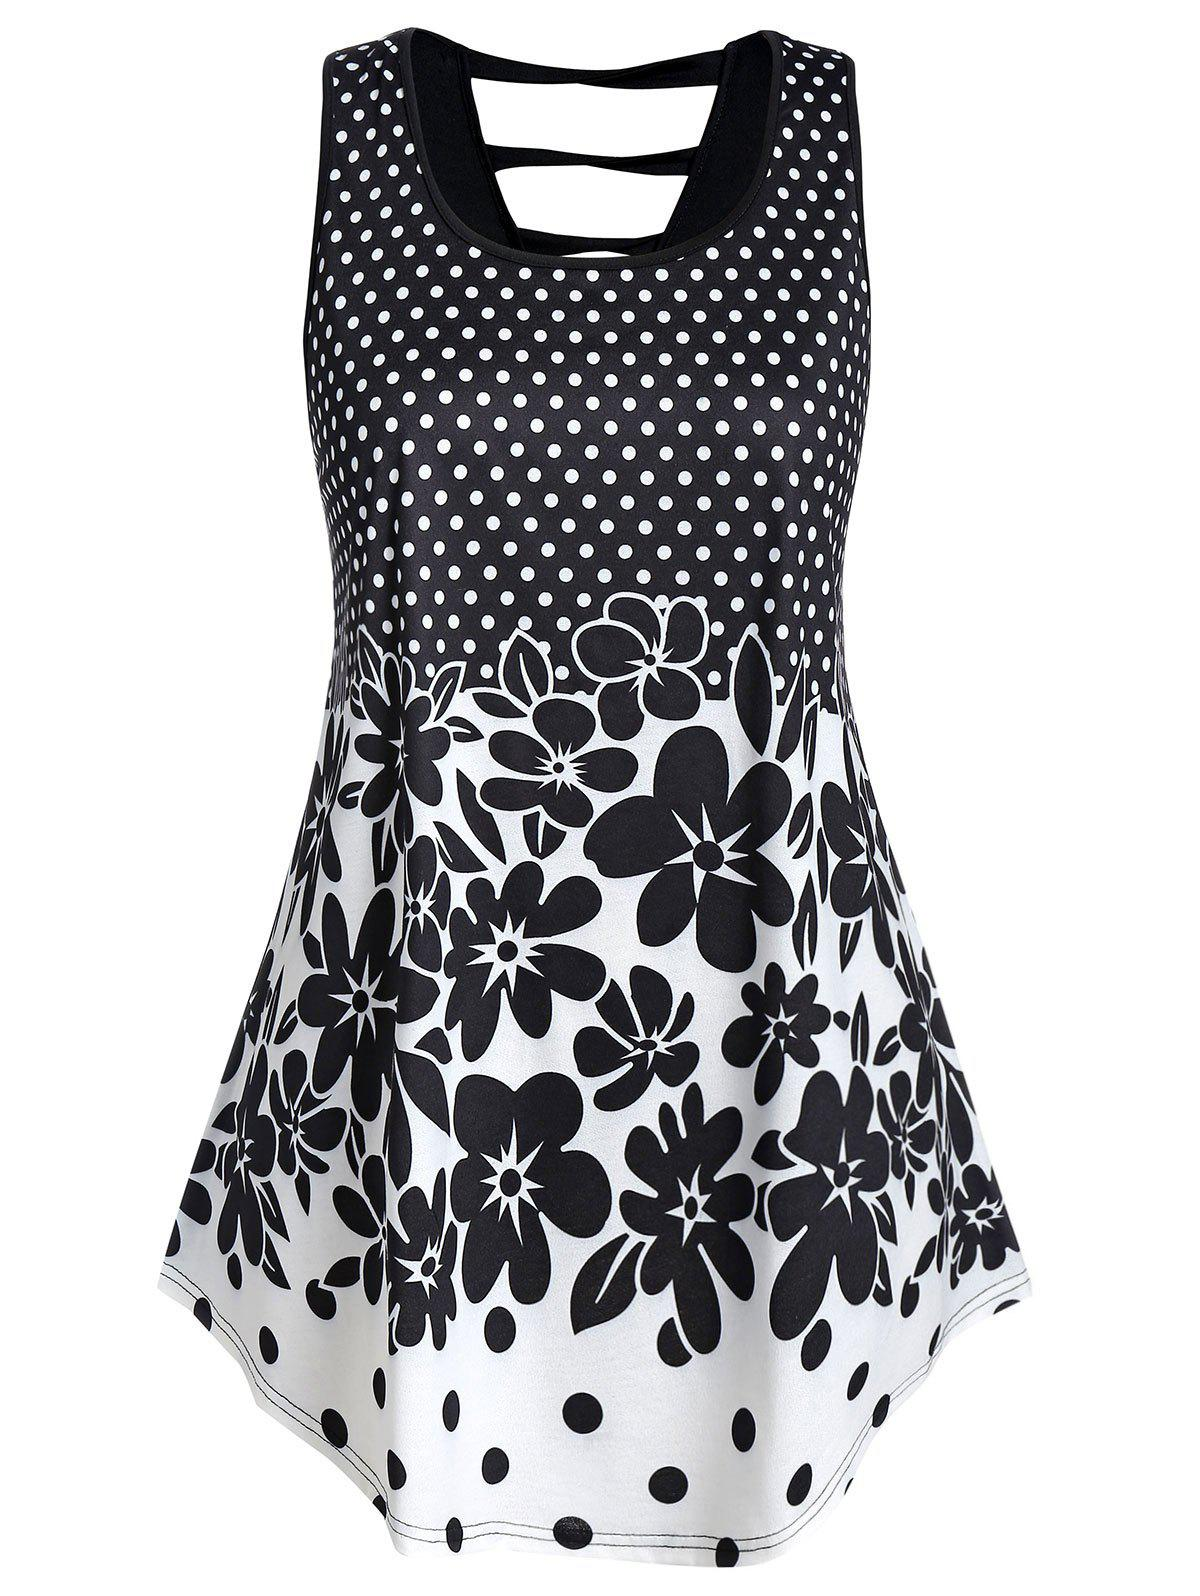 Plus Size Polka Dot and Floral Print Curved Hem Tank Top - BLACK 1X